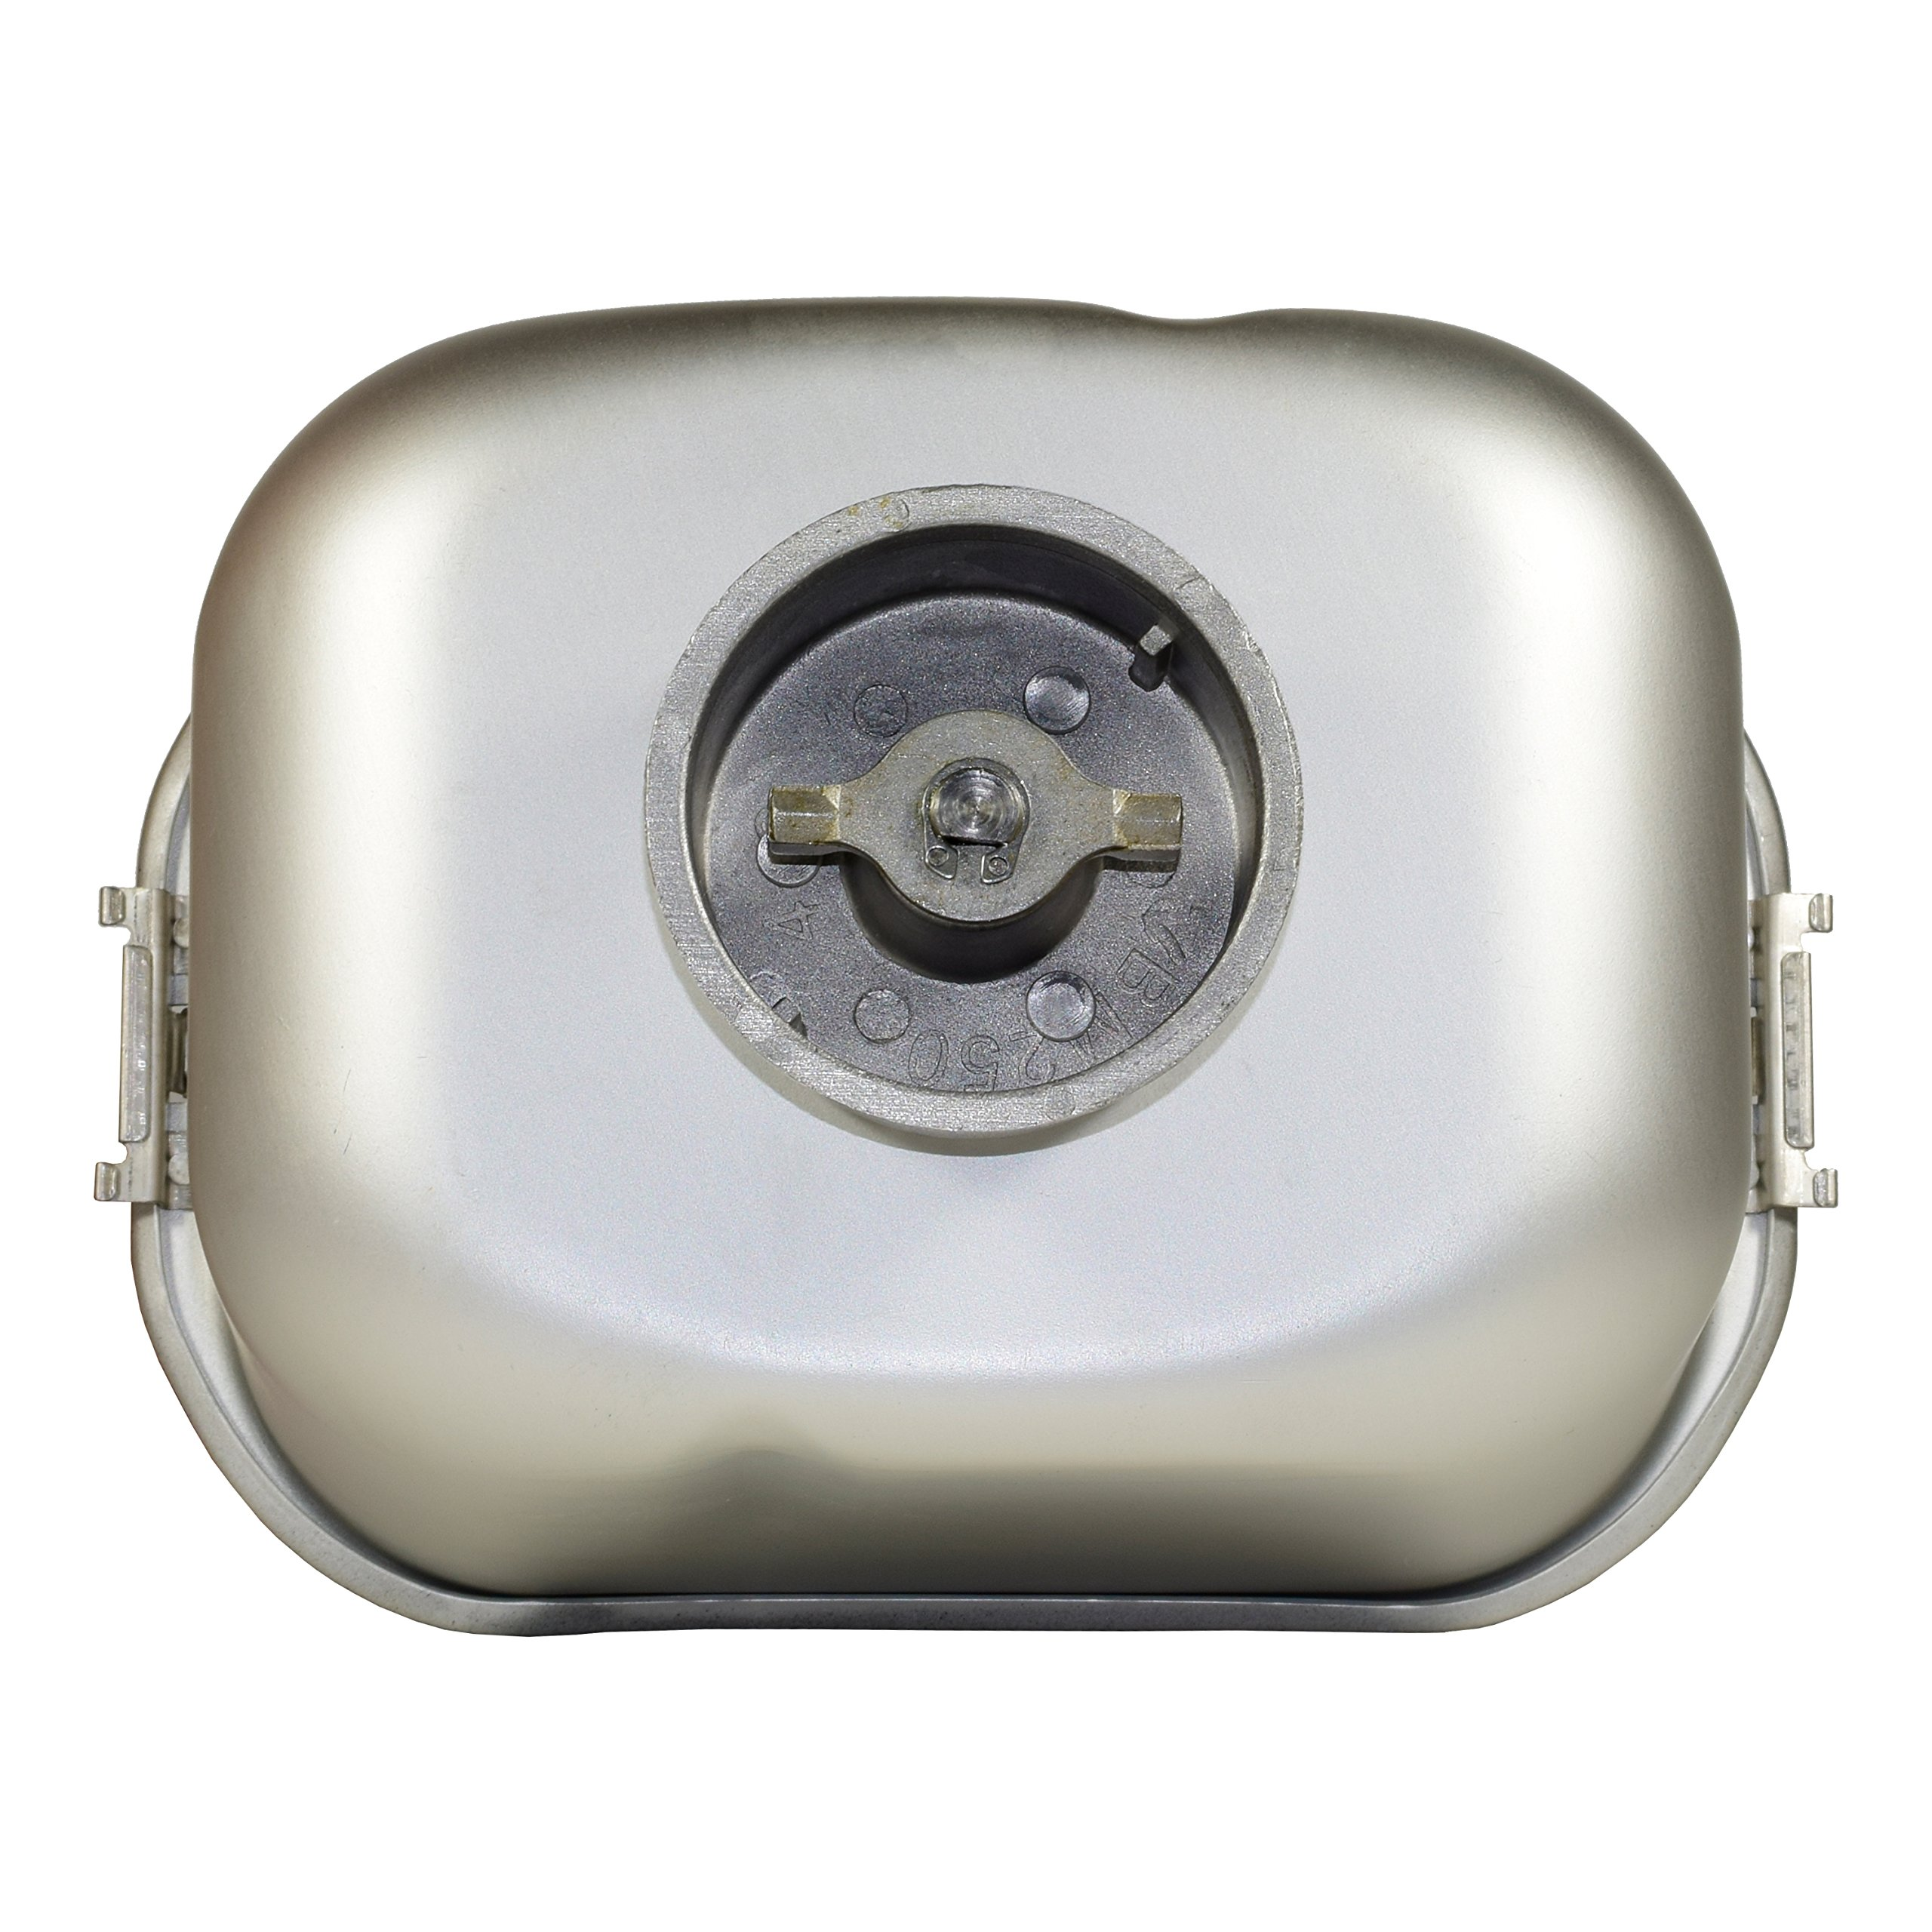 Univen (102529-000-000) Breadmaker Bread Pan Replaces Sunbeam Oster by Univen (Image #4)